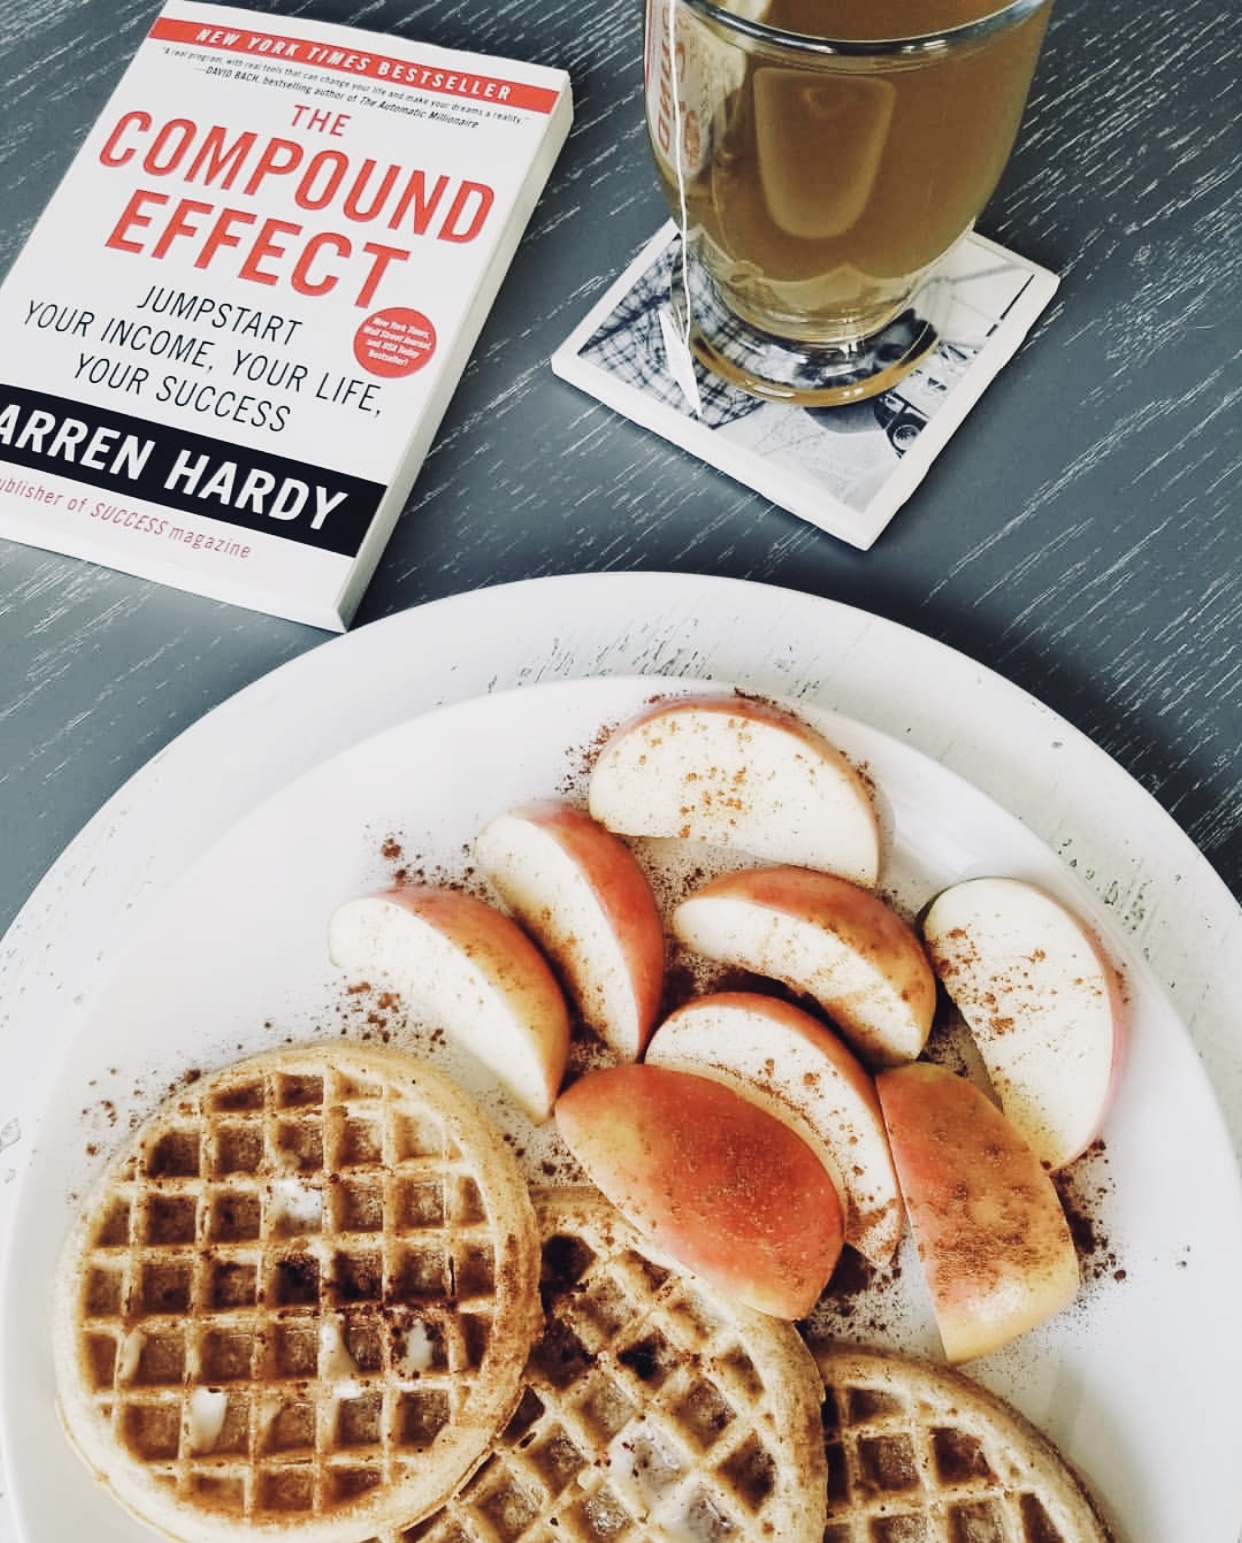 Compound Effect and Breakfast Waffles